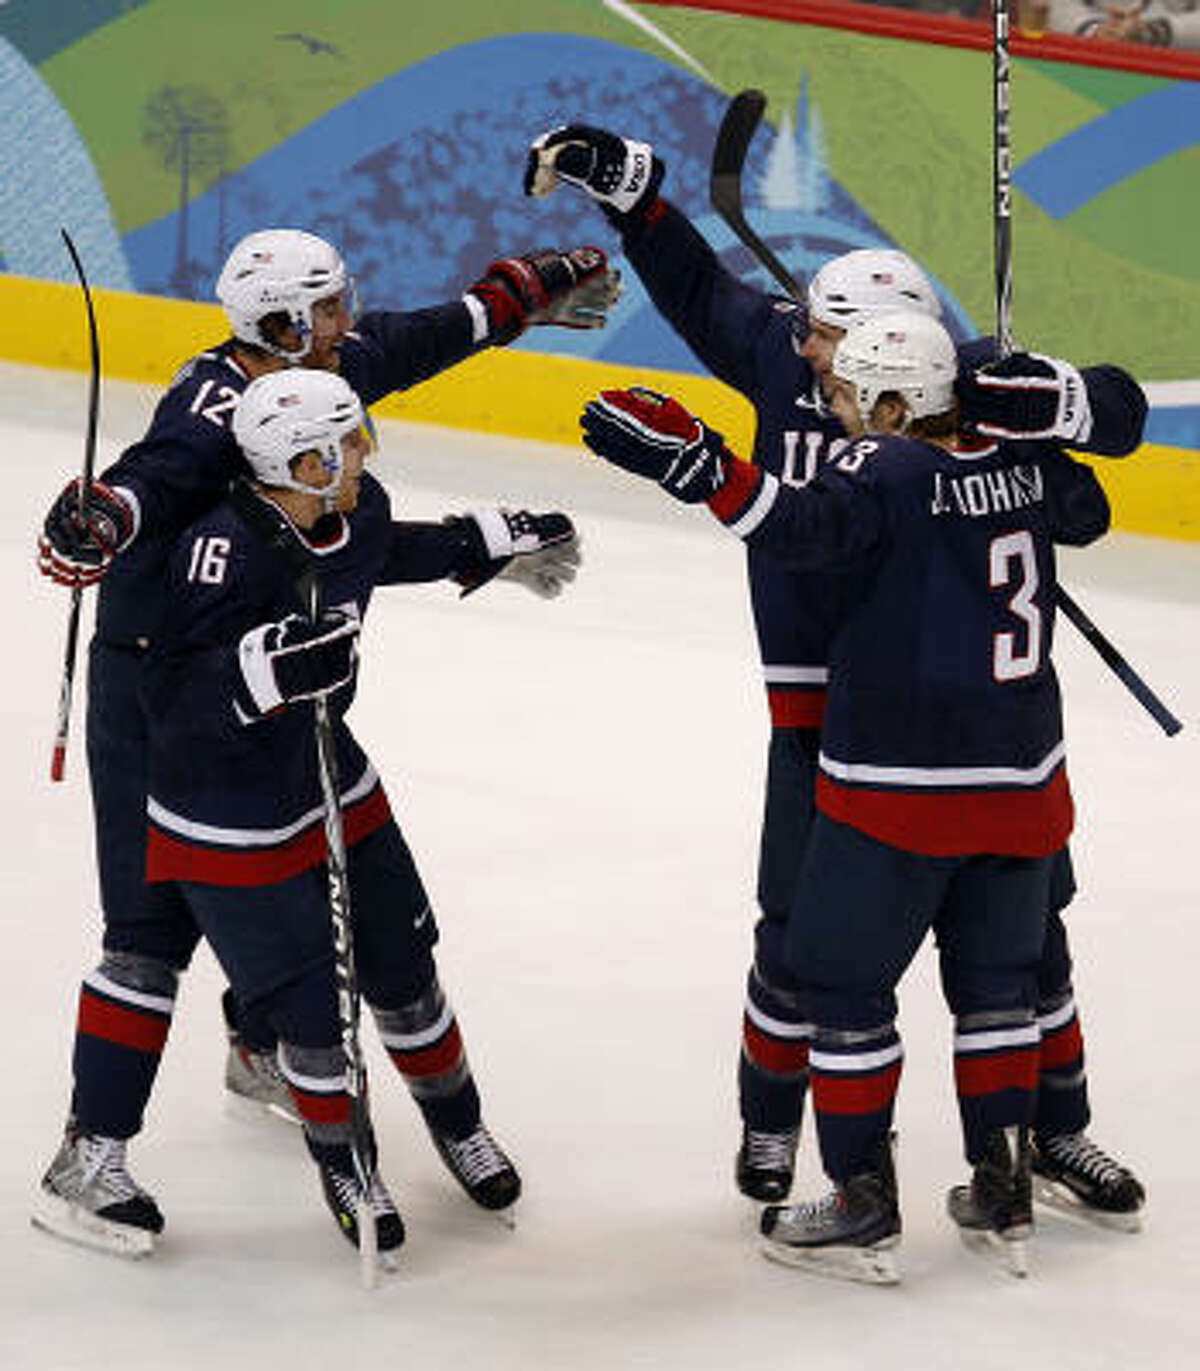 It's another goal and another celebration for the United States, which scored six times.